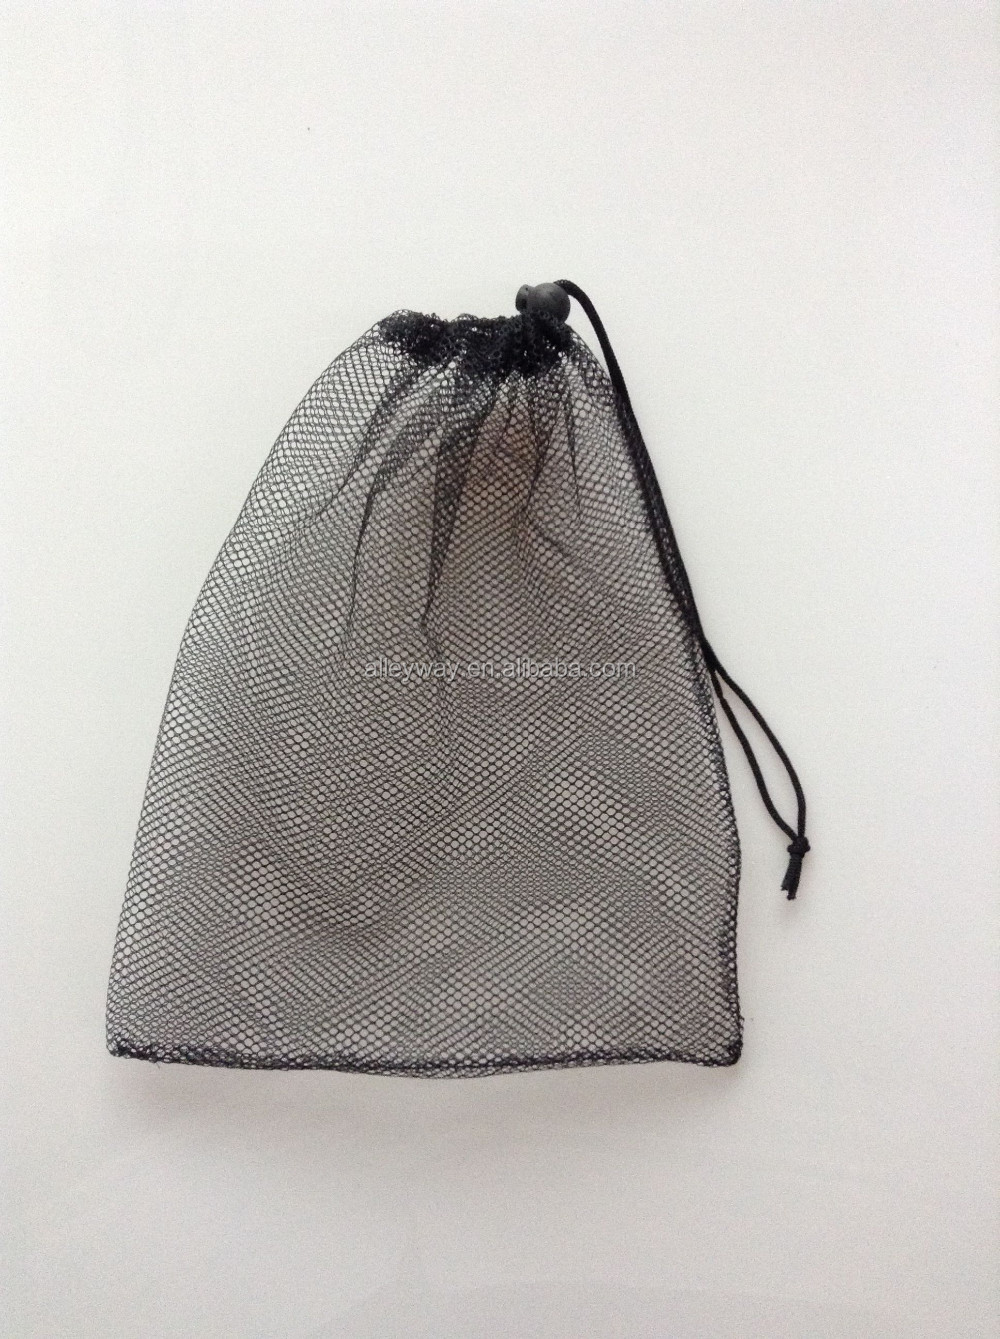 Nylon net drawstring bag 25cm x 30cm